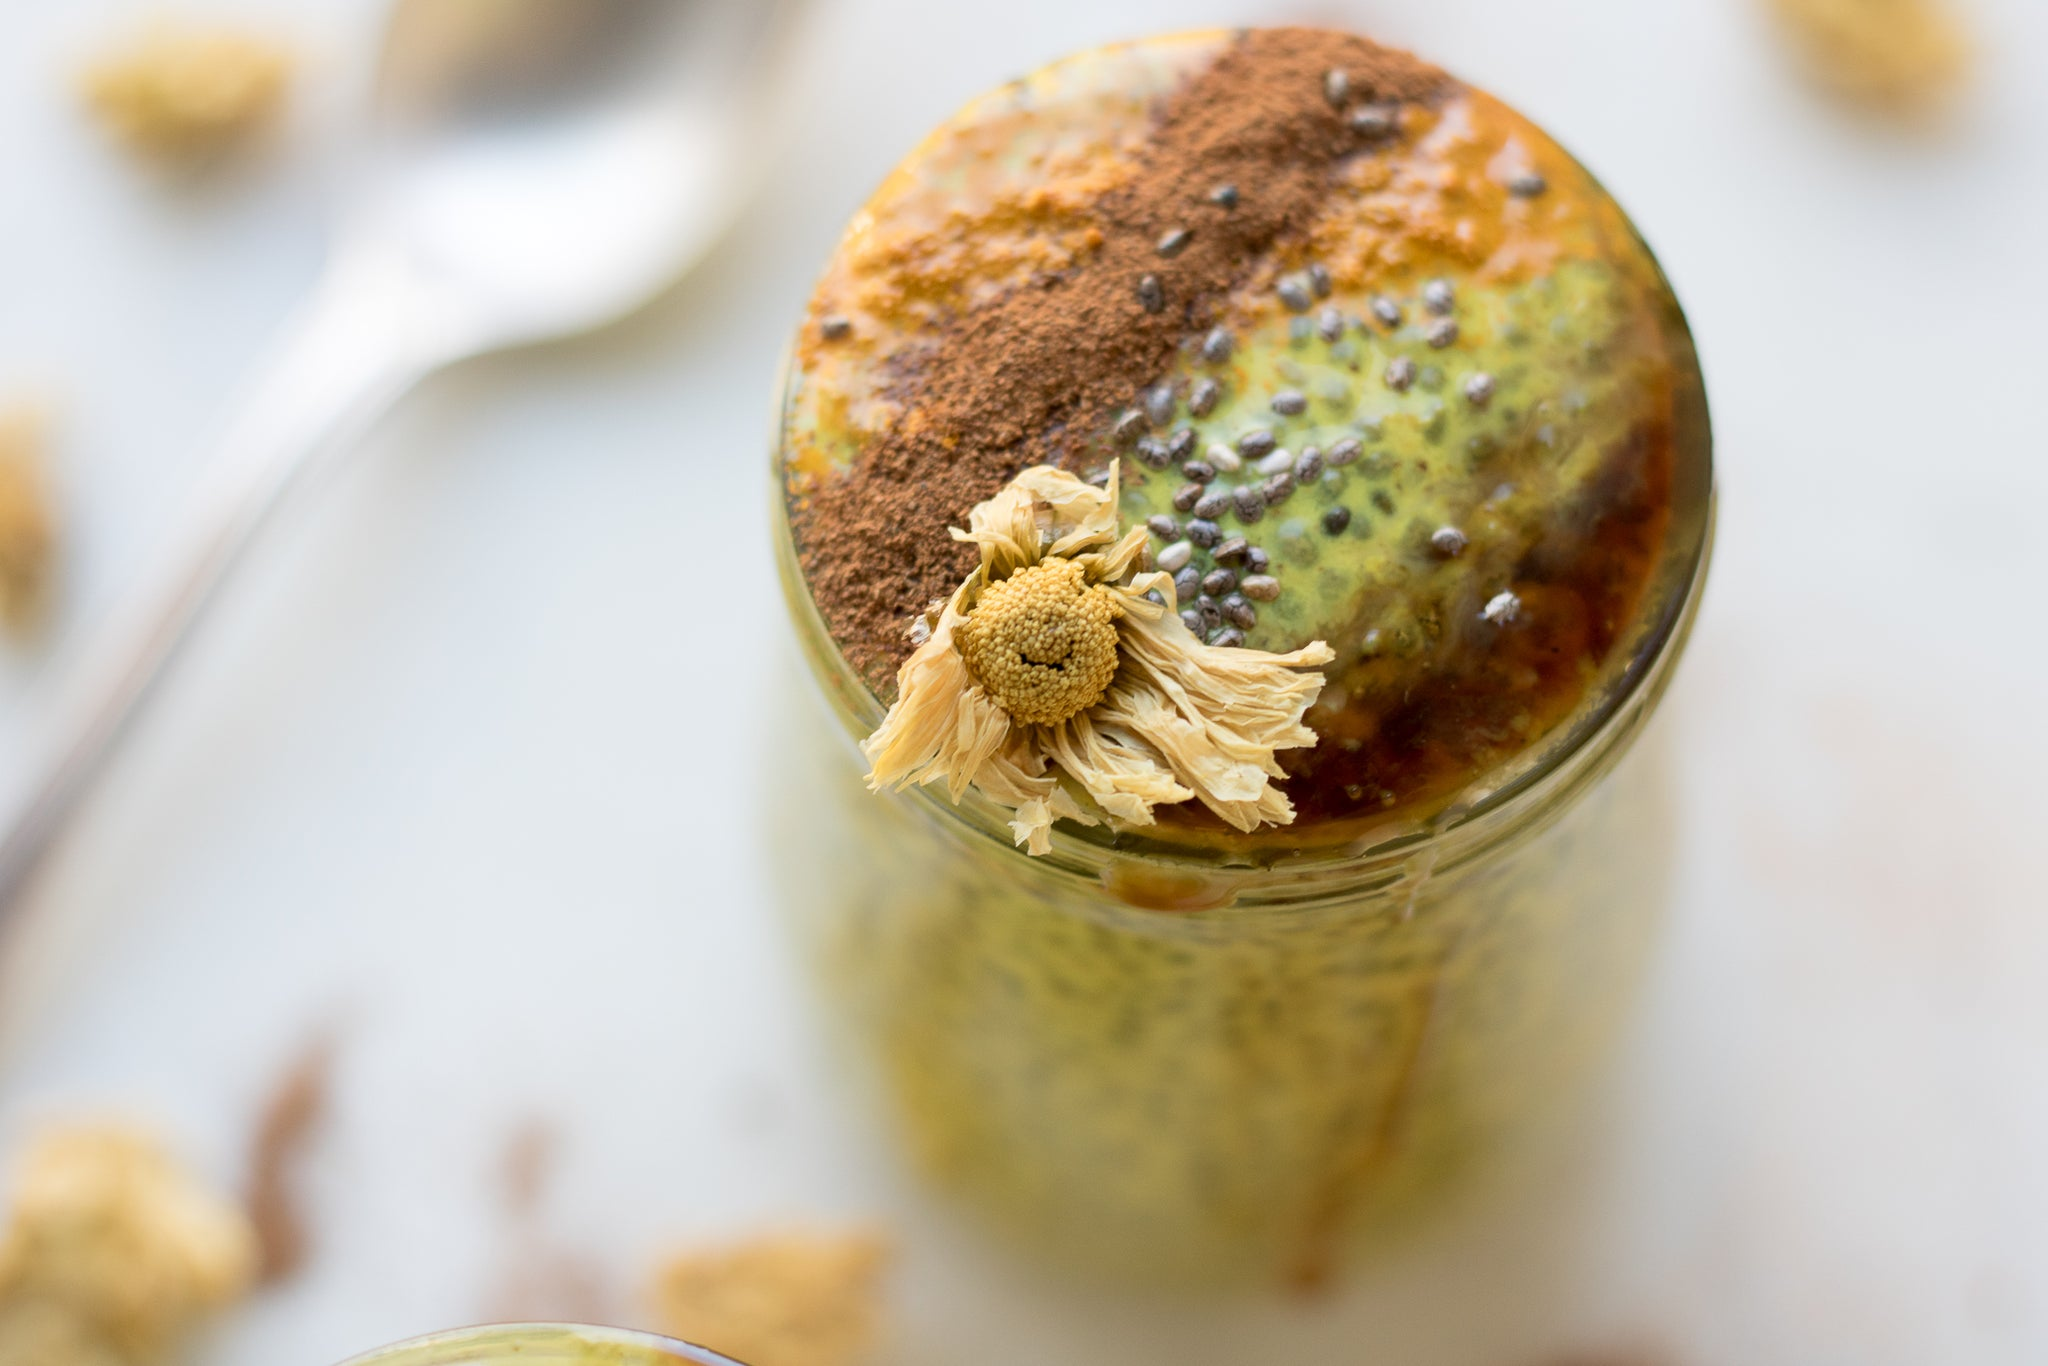 Chrysanthemum-Infused Golden Milk Chia Pudding